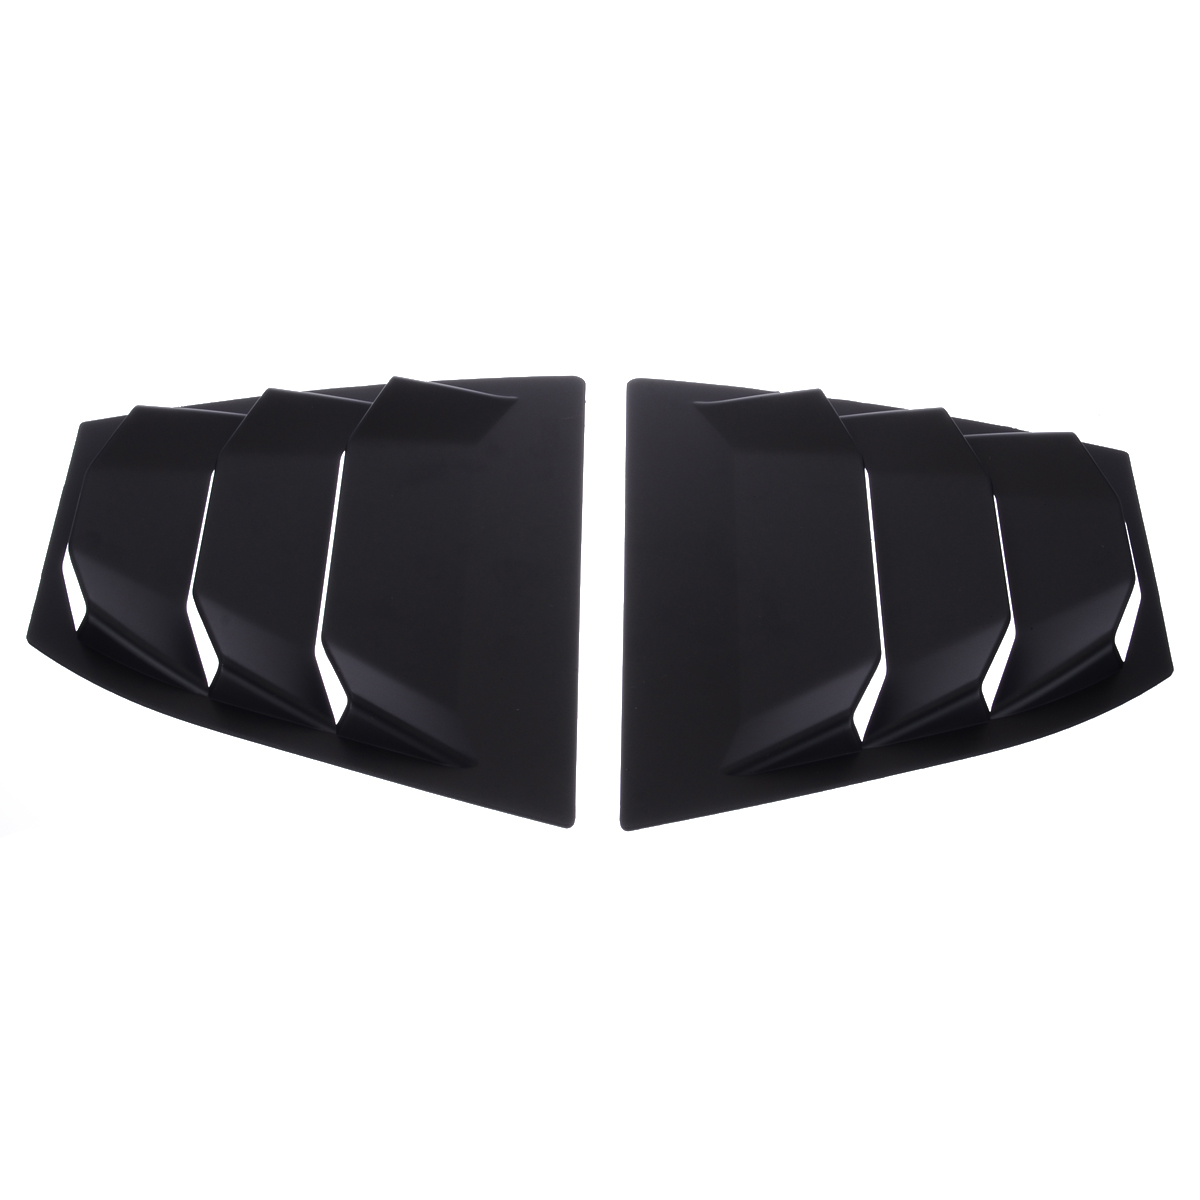 1 Pair Rear Quarter Panel Window Side Louver Vent ABS Matte Black For Mazda 3 AXELA 14-17